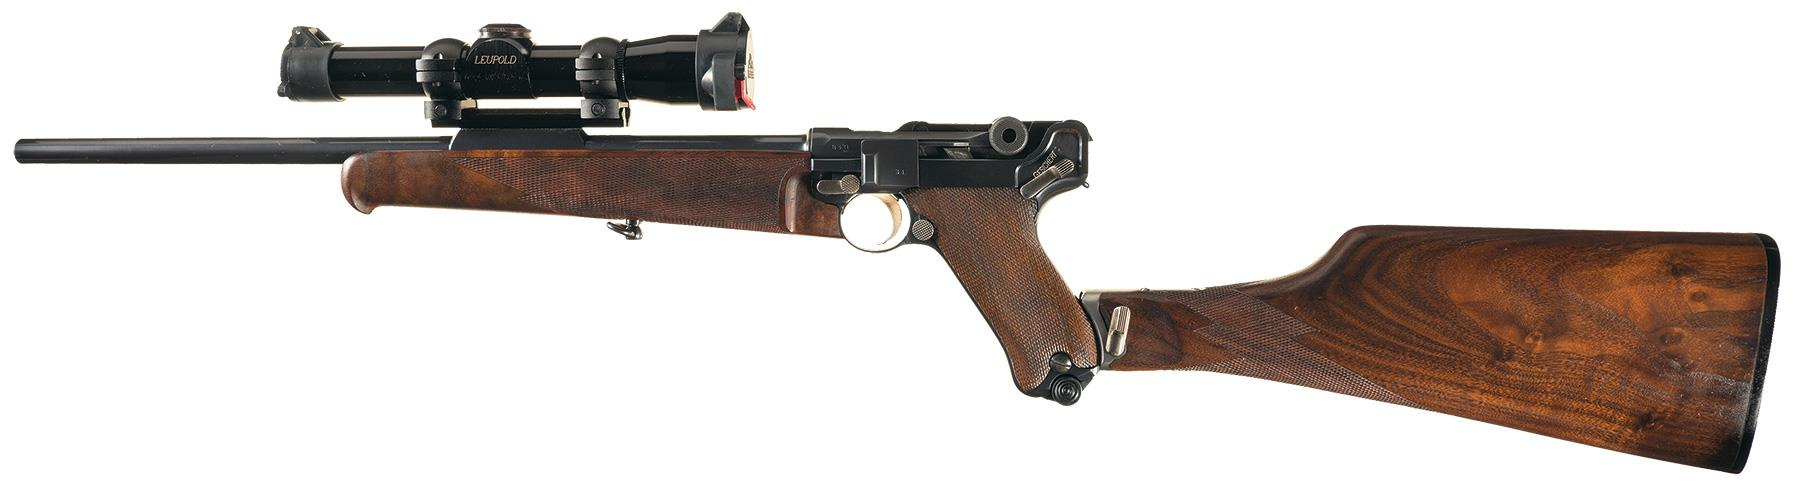 Image result for beckett solo carbine to pistol